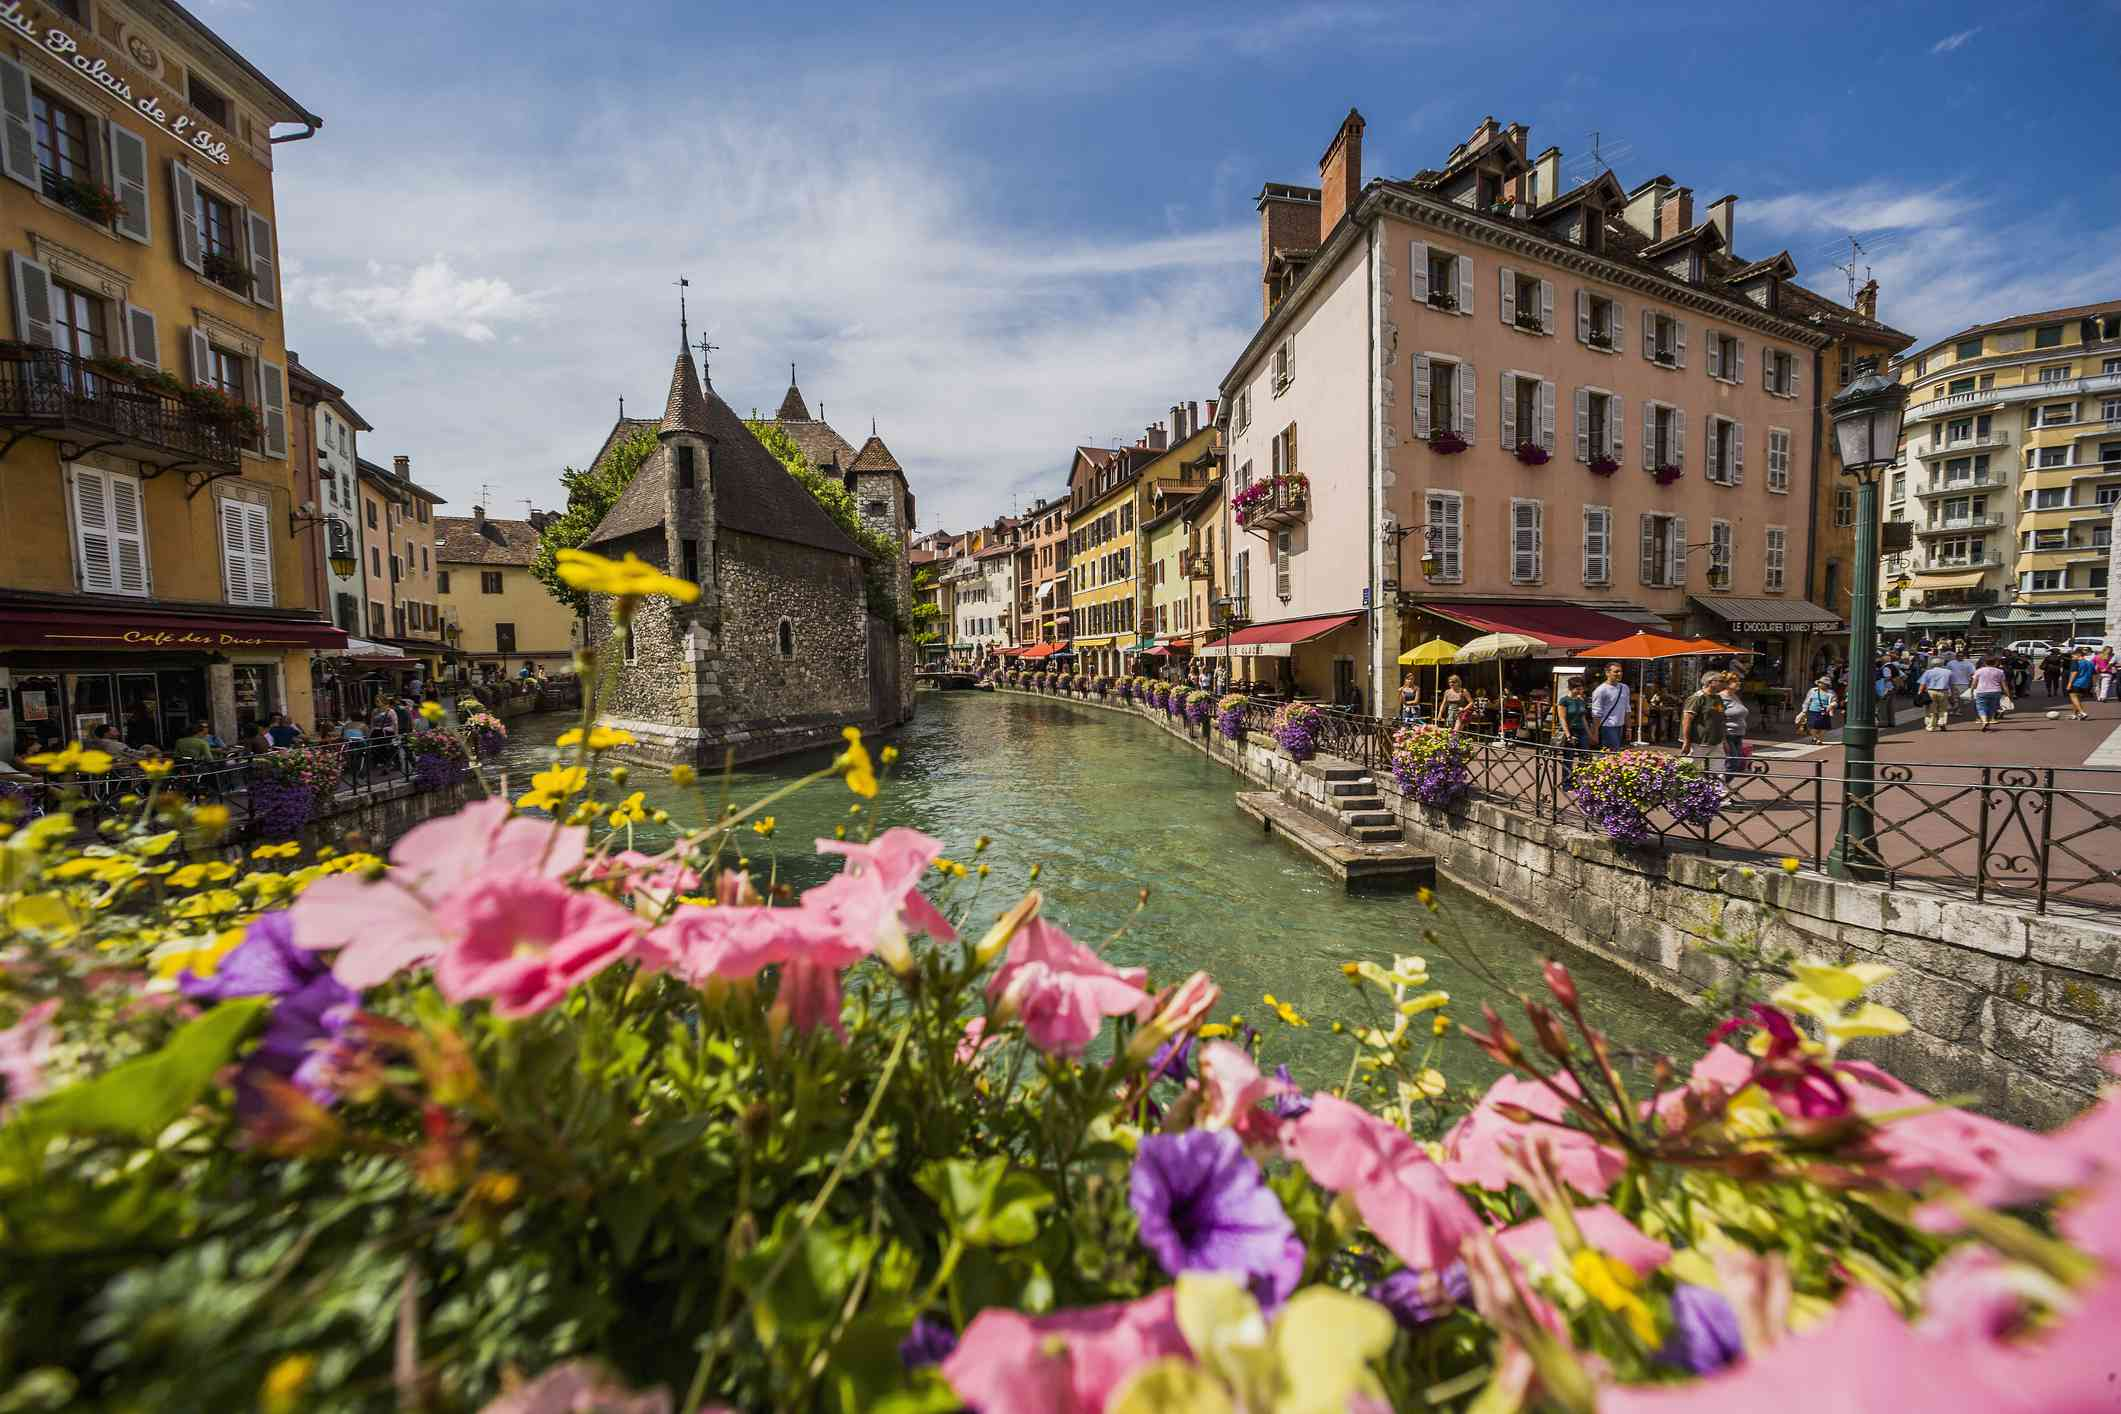 Palais (palace) de l'Ile and Thiou river with colorful flowers in the foreground